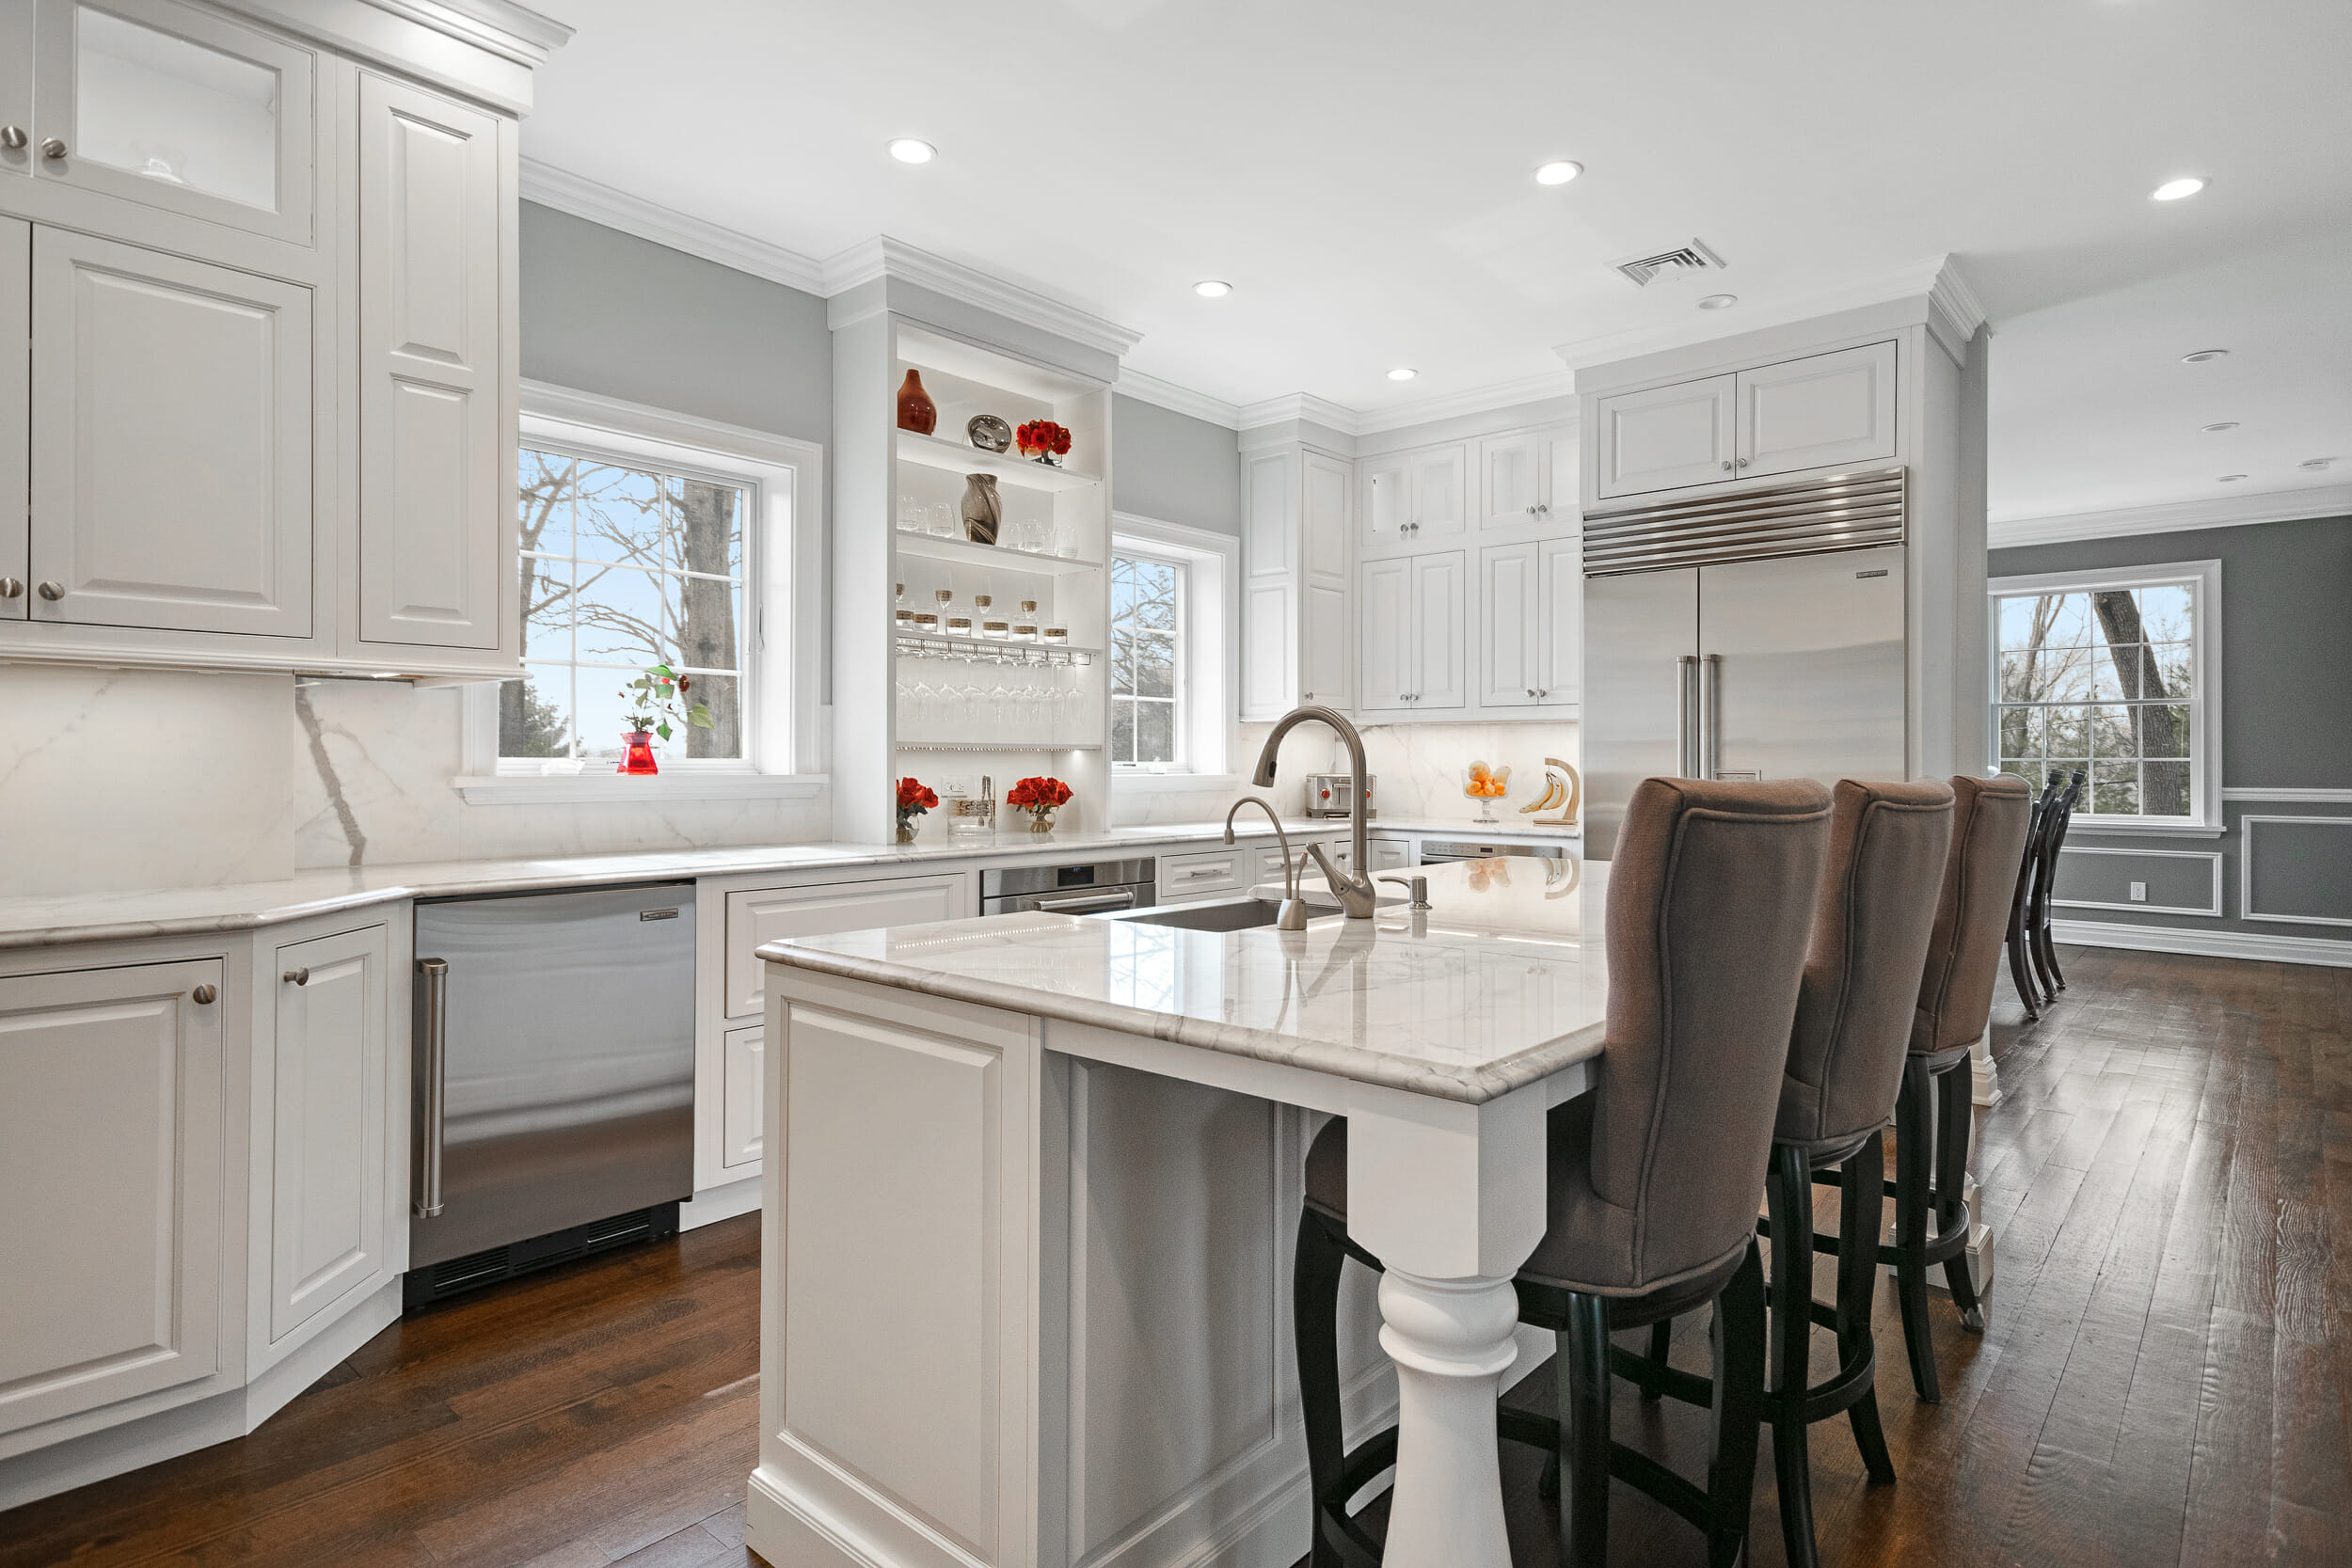 Verona Nj Cabinetry Bathroom Kitchen Remodelers Free Consultation